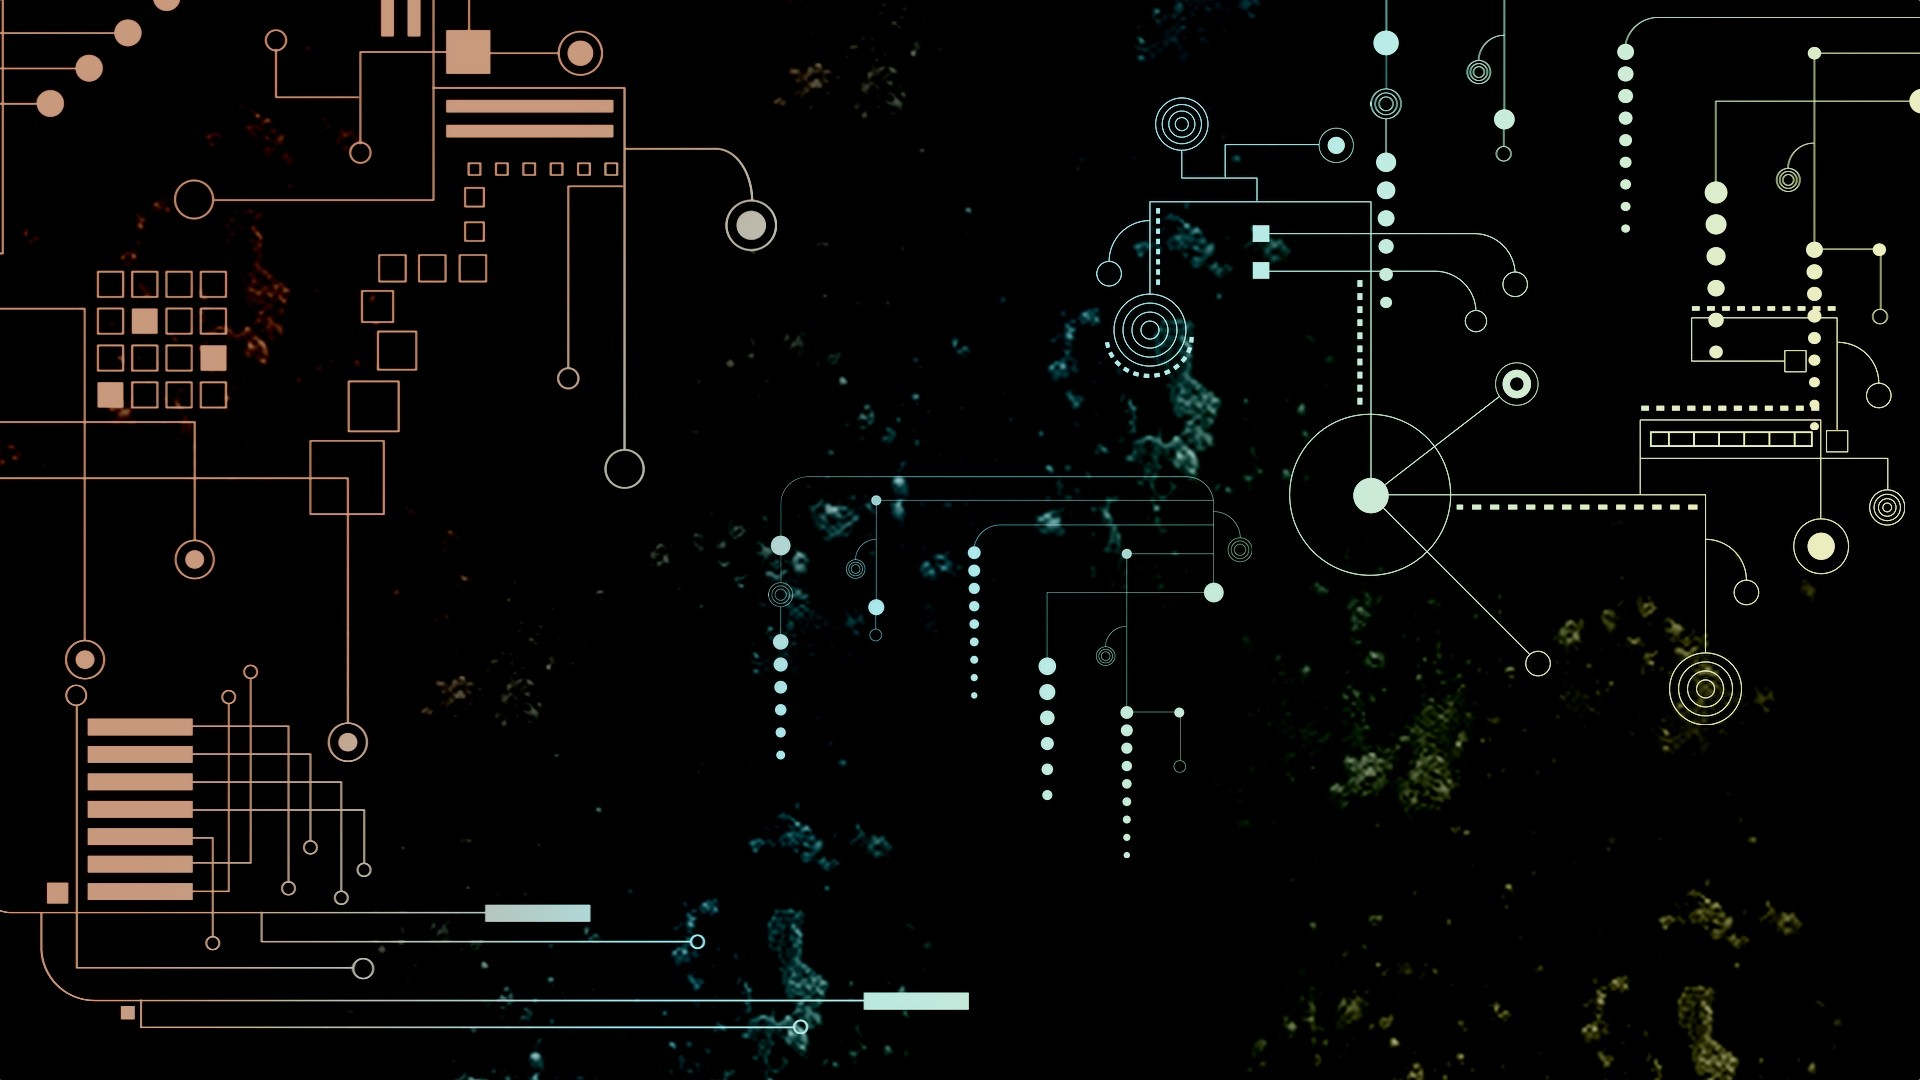 Schematic And Wiring Diagram Circuit Board Wallpaper 67 Images